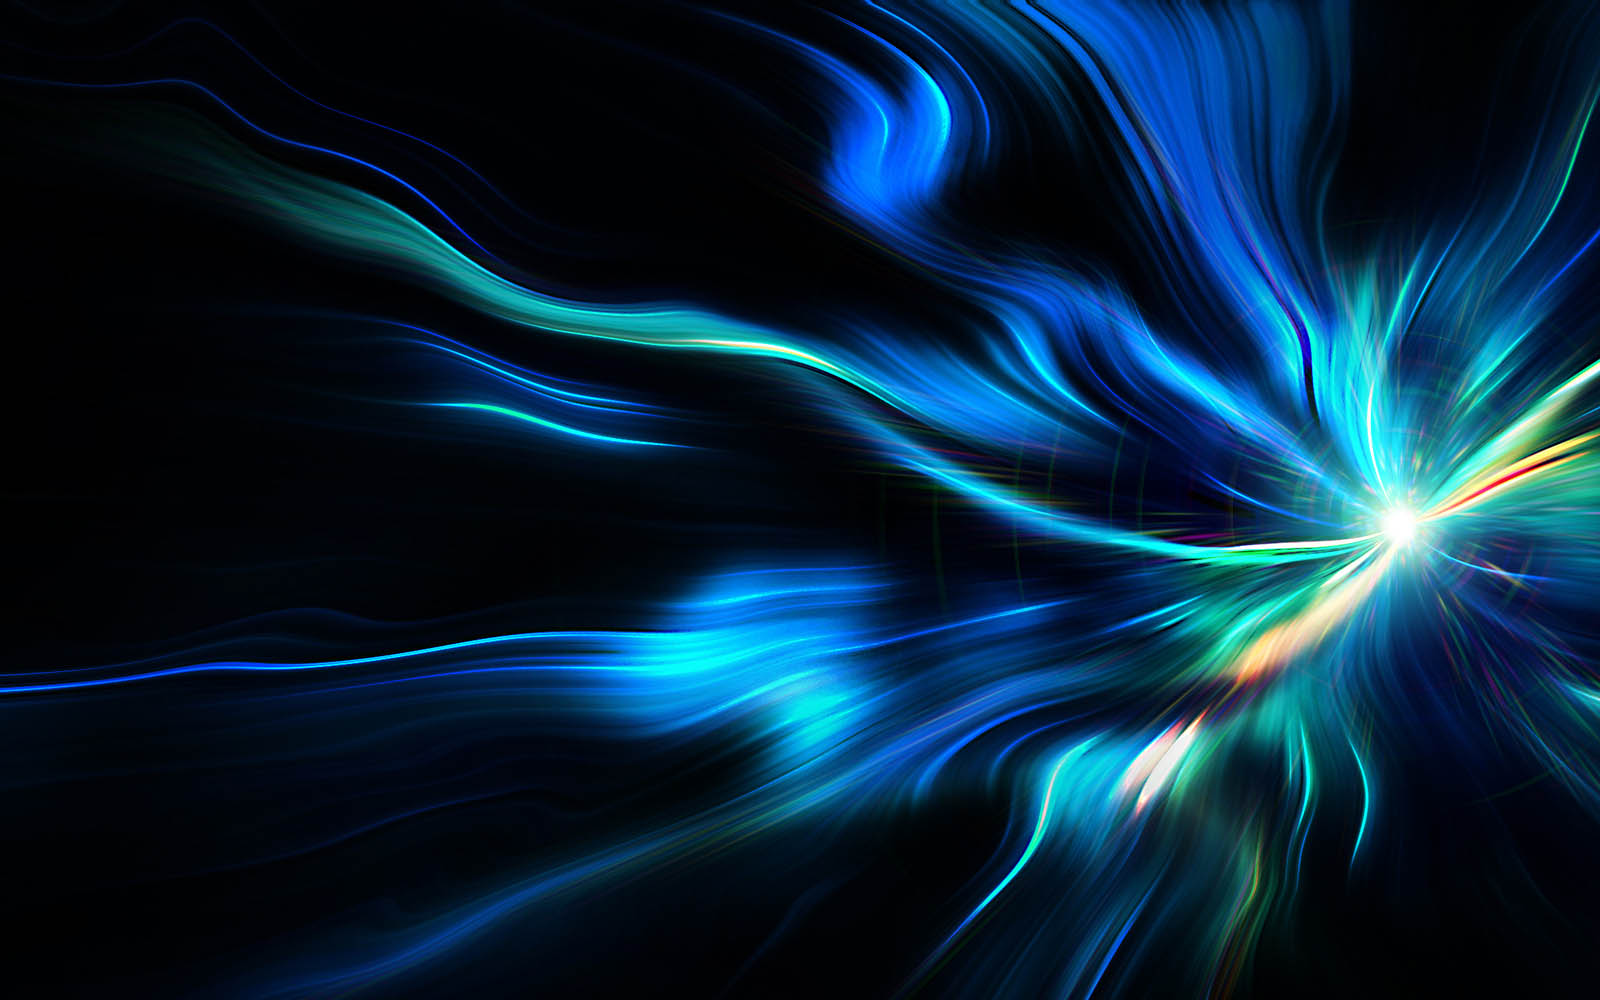 50 Free 3d Computer Desktop Wallpaper On Wallpapersafari